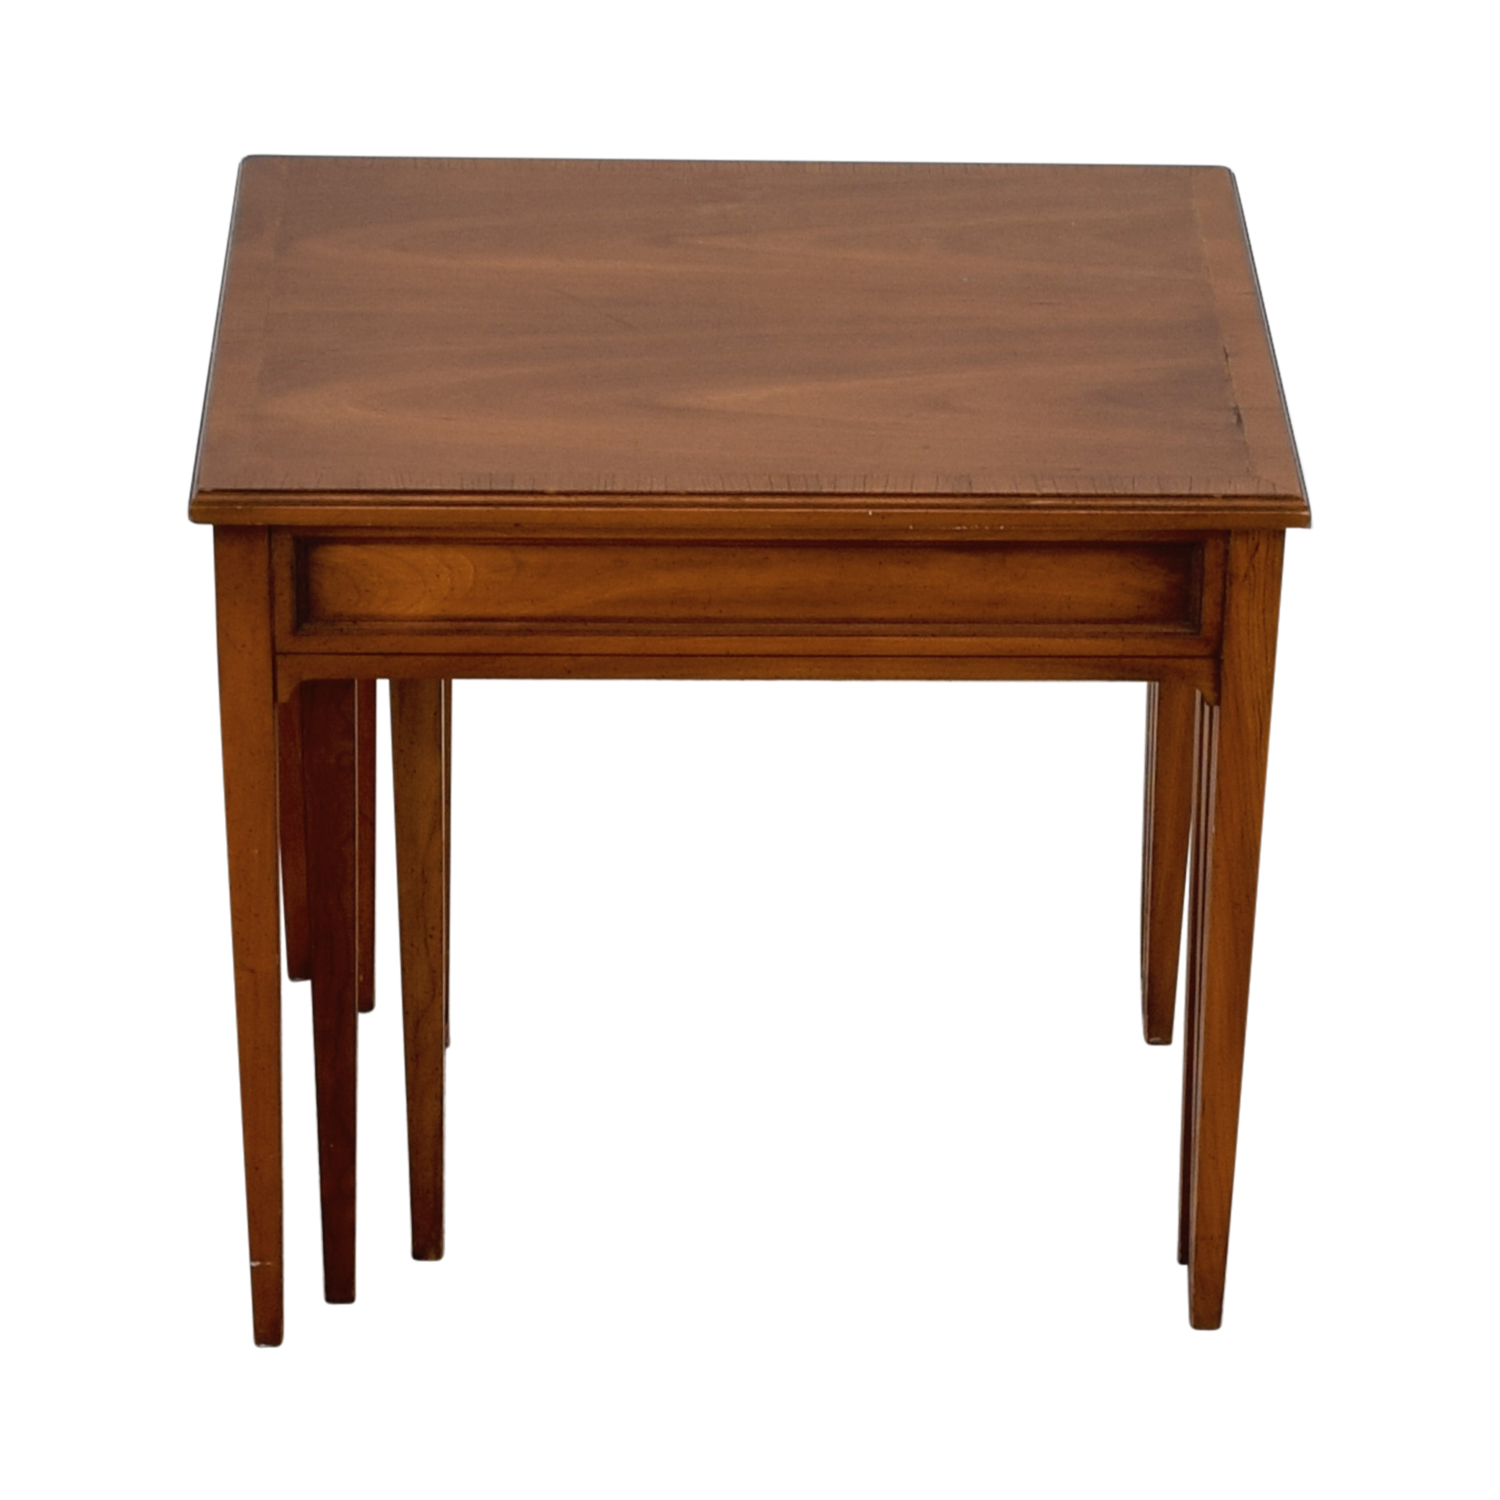 buy Three-Tiered Wood Nesting Table